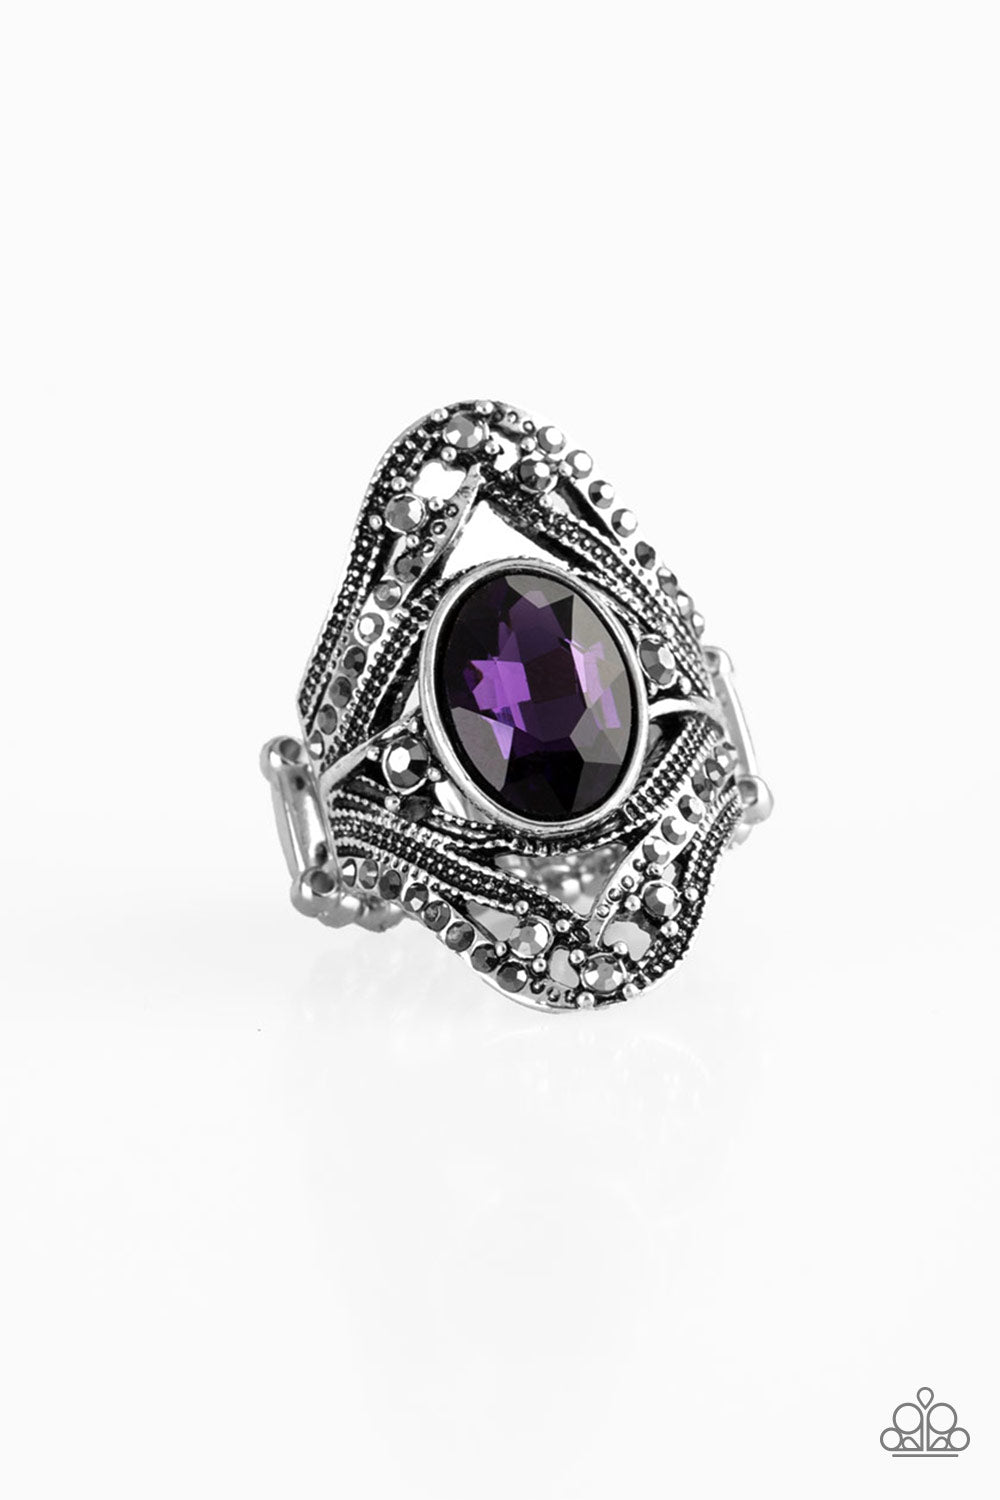 Paparazzi Red Carpet Rebel Purple Ring